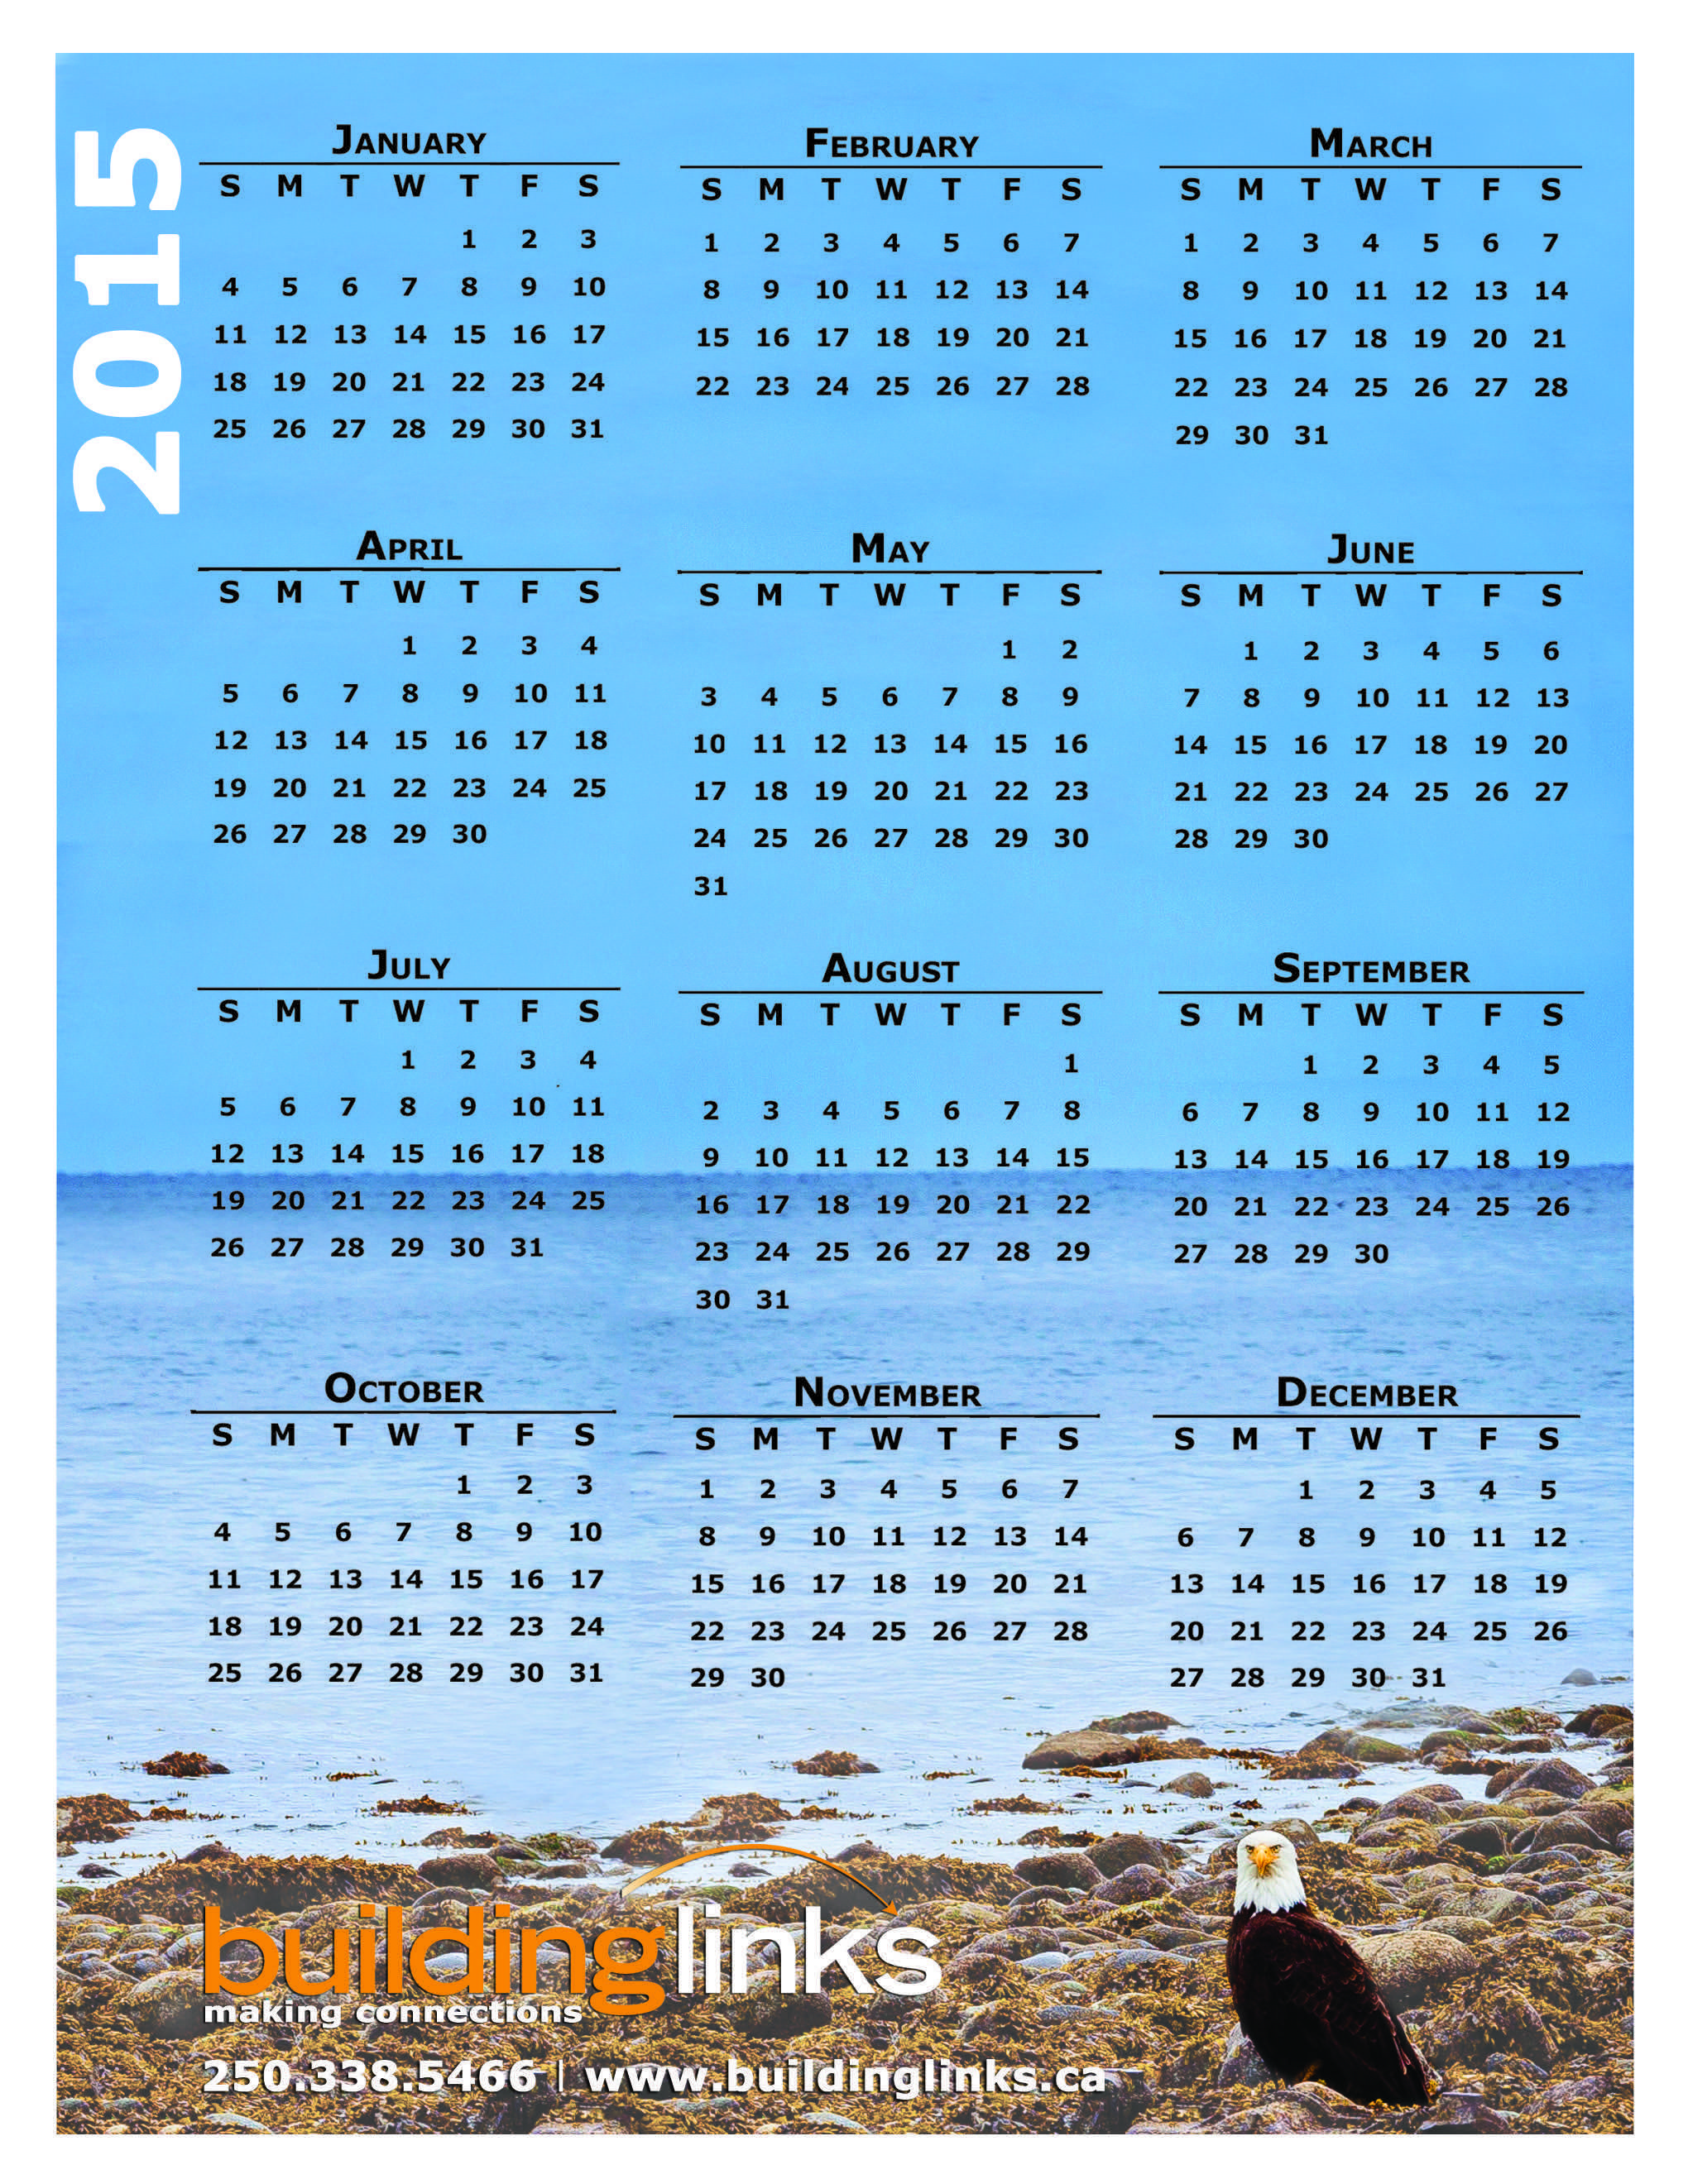 The Building Links 2015 Year at a Glance calendar.